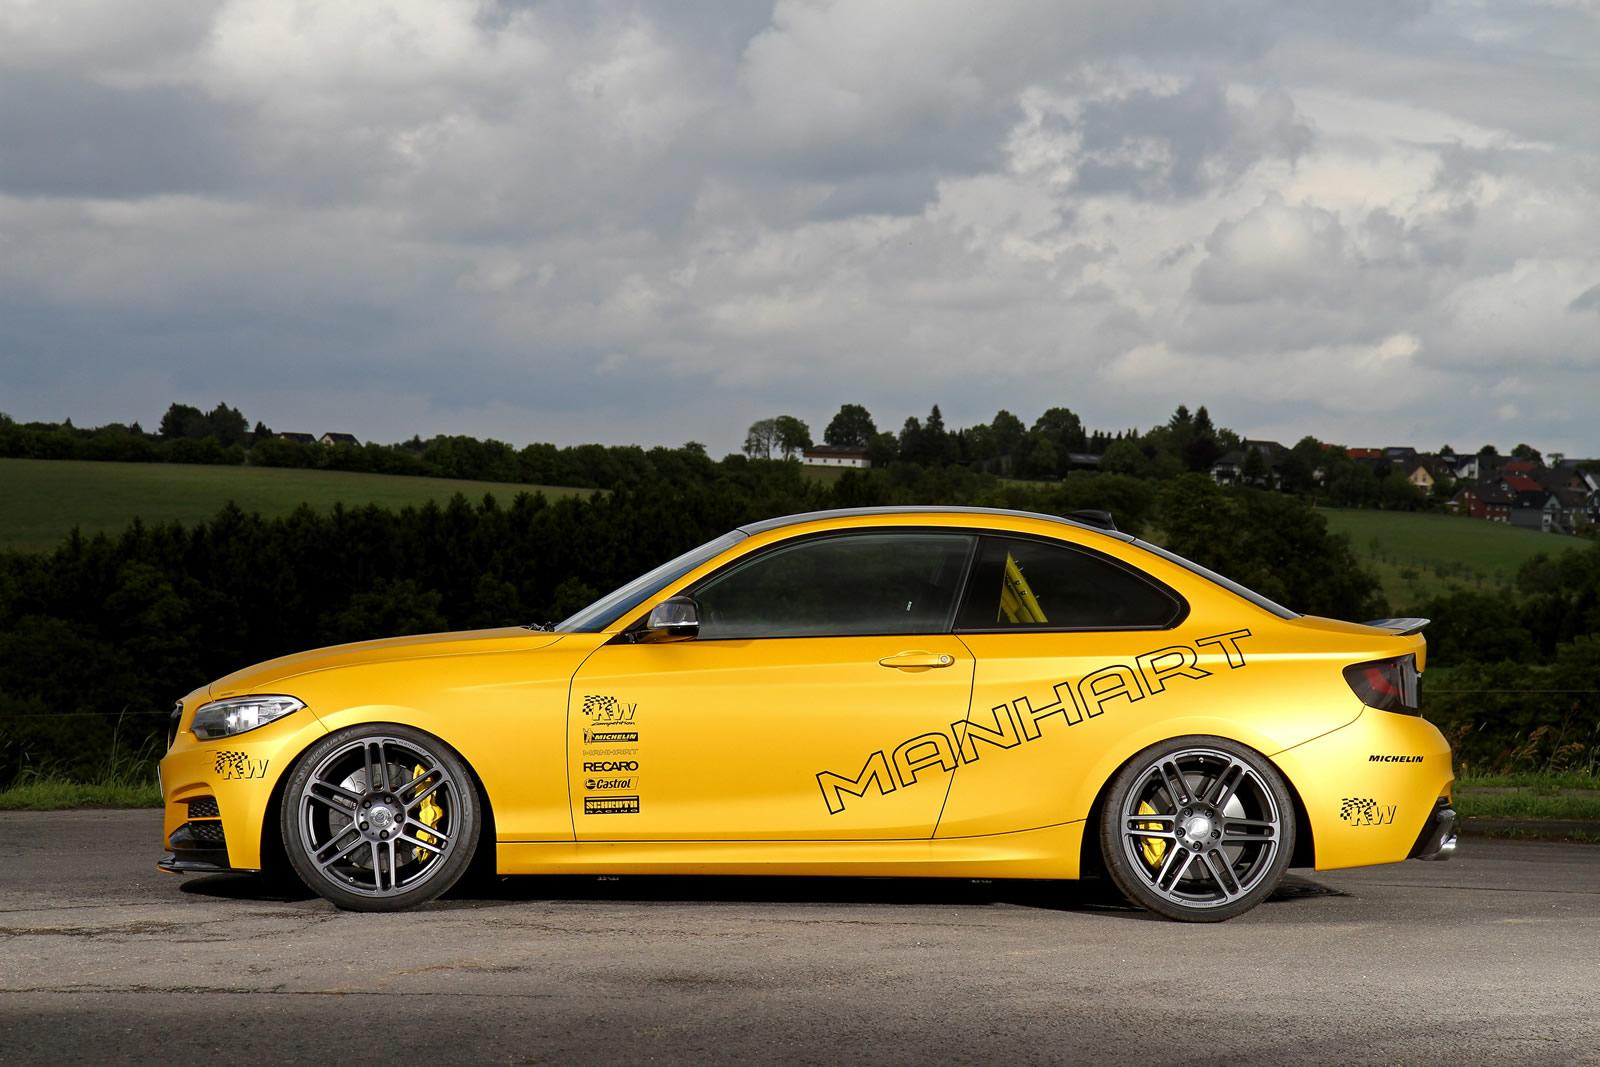 Manhart boosts the power of the BMW M235i to 430 hp